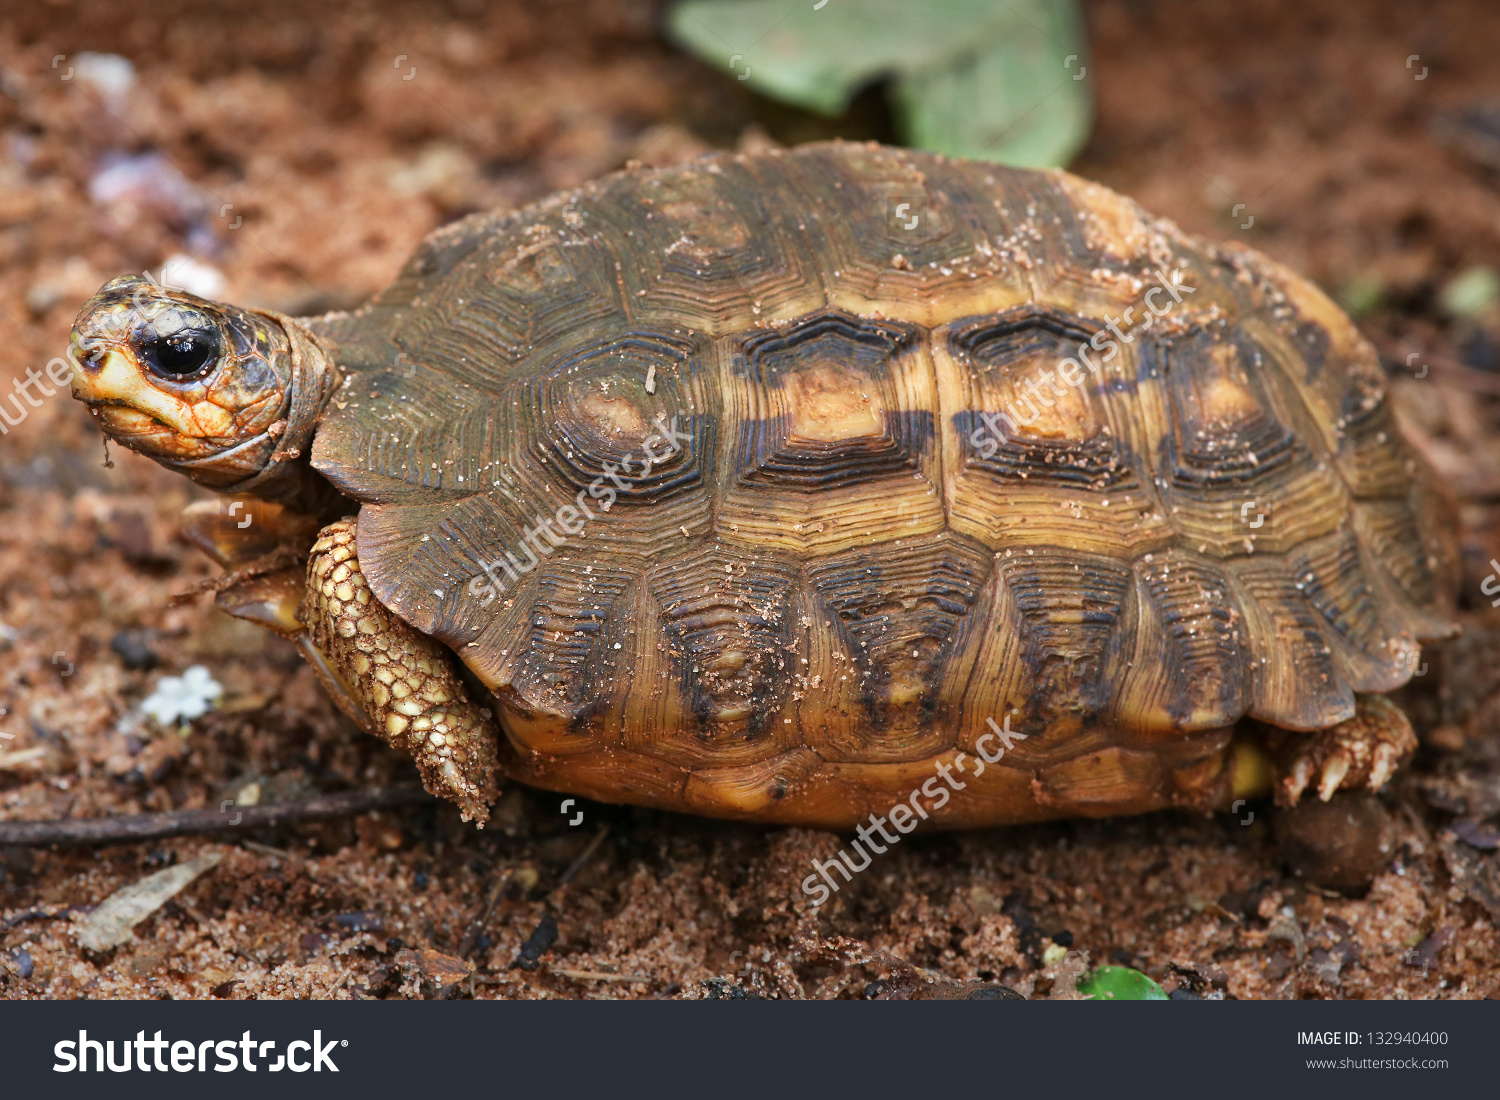 Spider Tortoise clipart #10, Download drawings